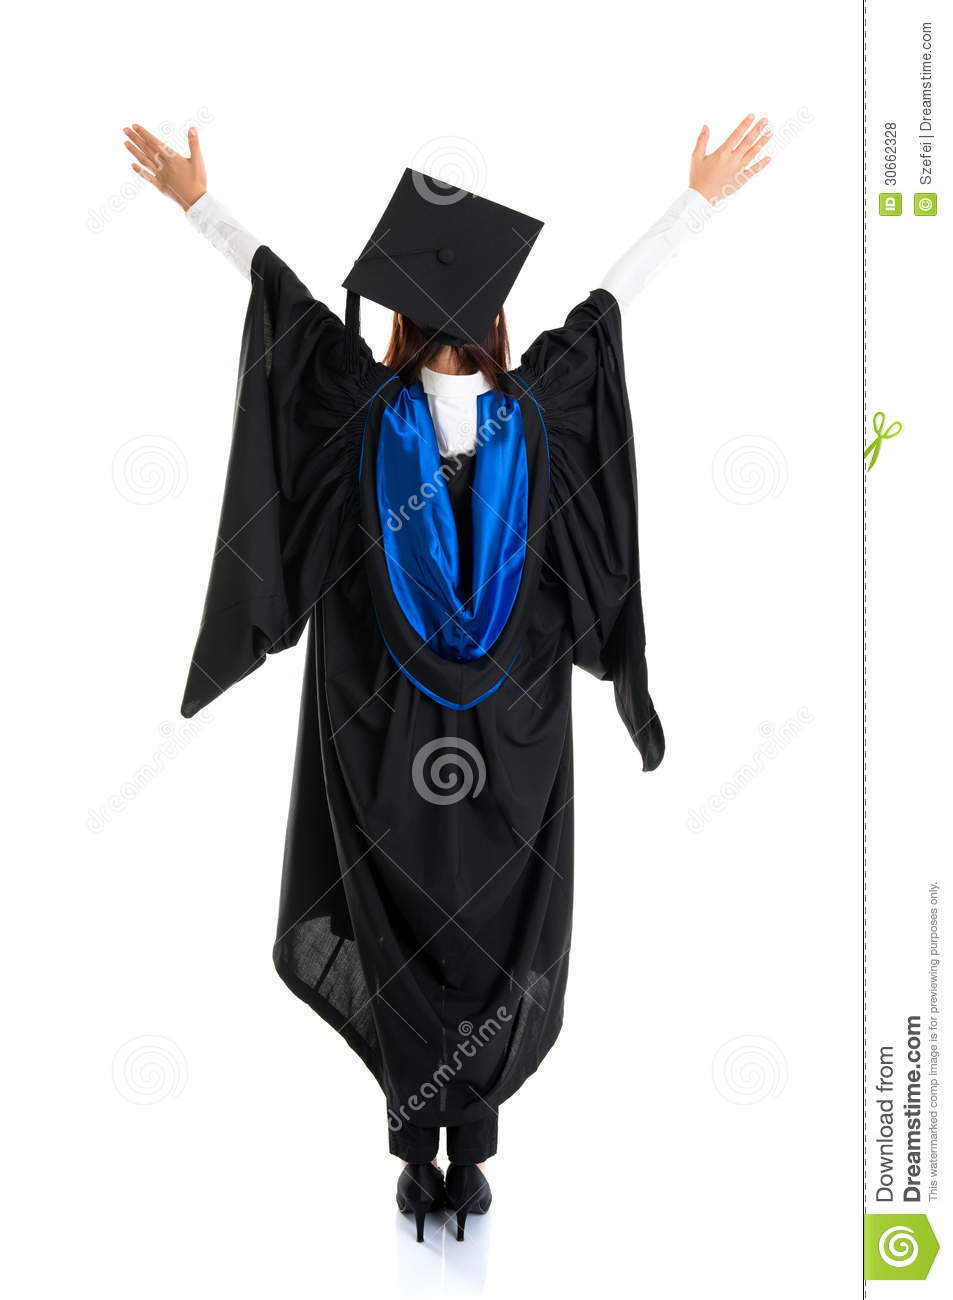 Graduate Student Rear View Royalty Free Stock Photos